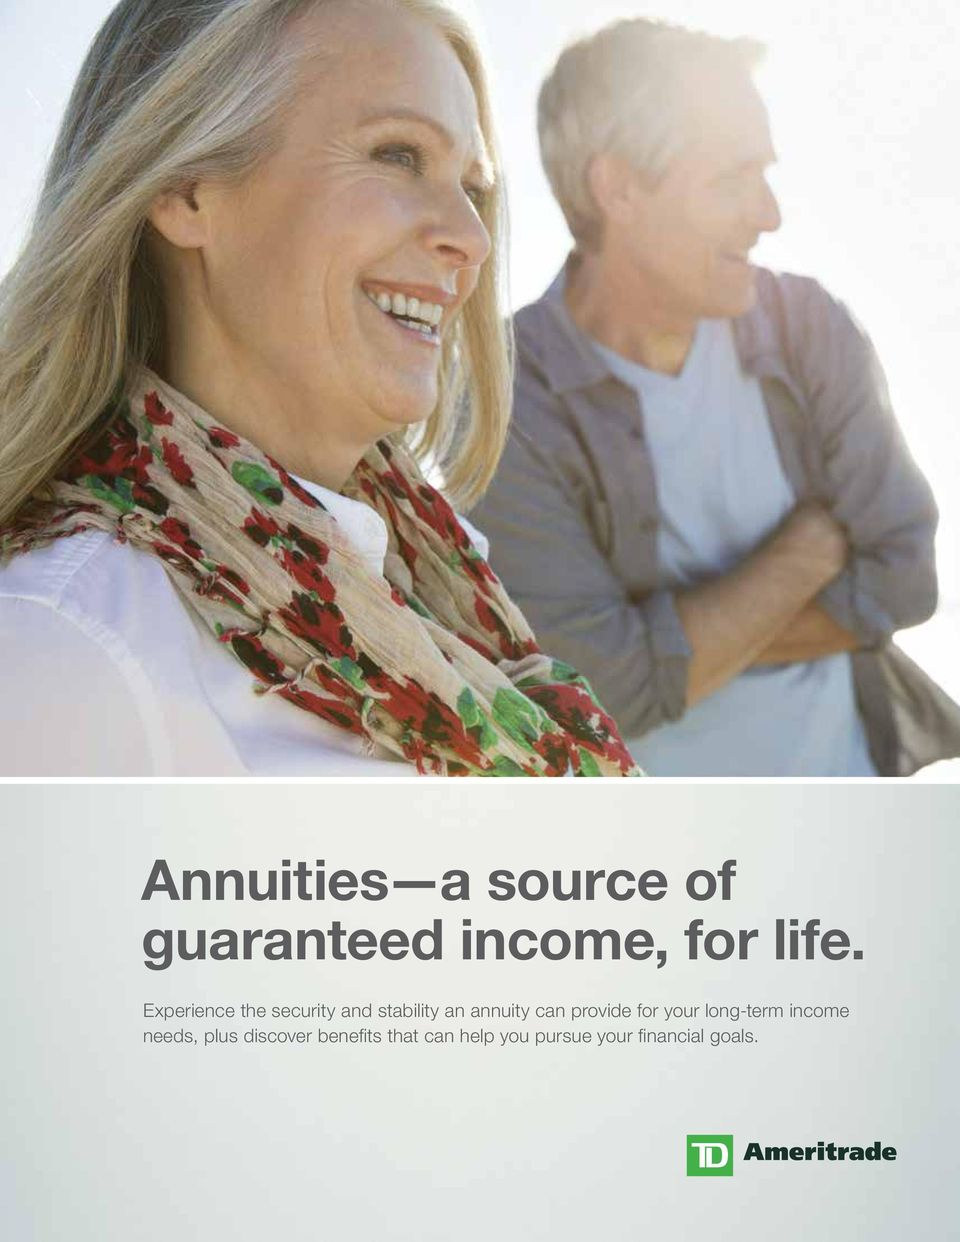 provide for your long-term income needs, plus